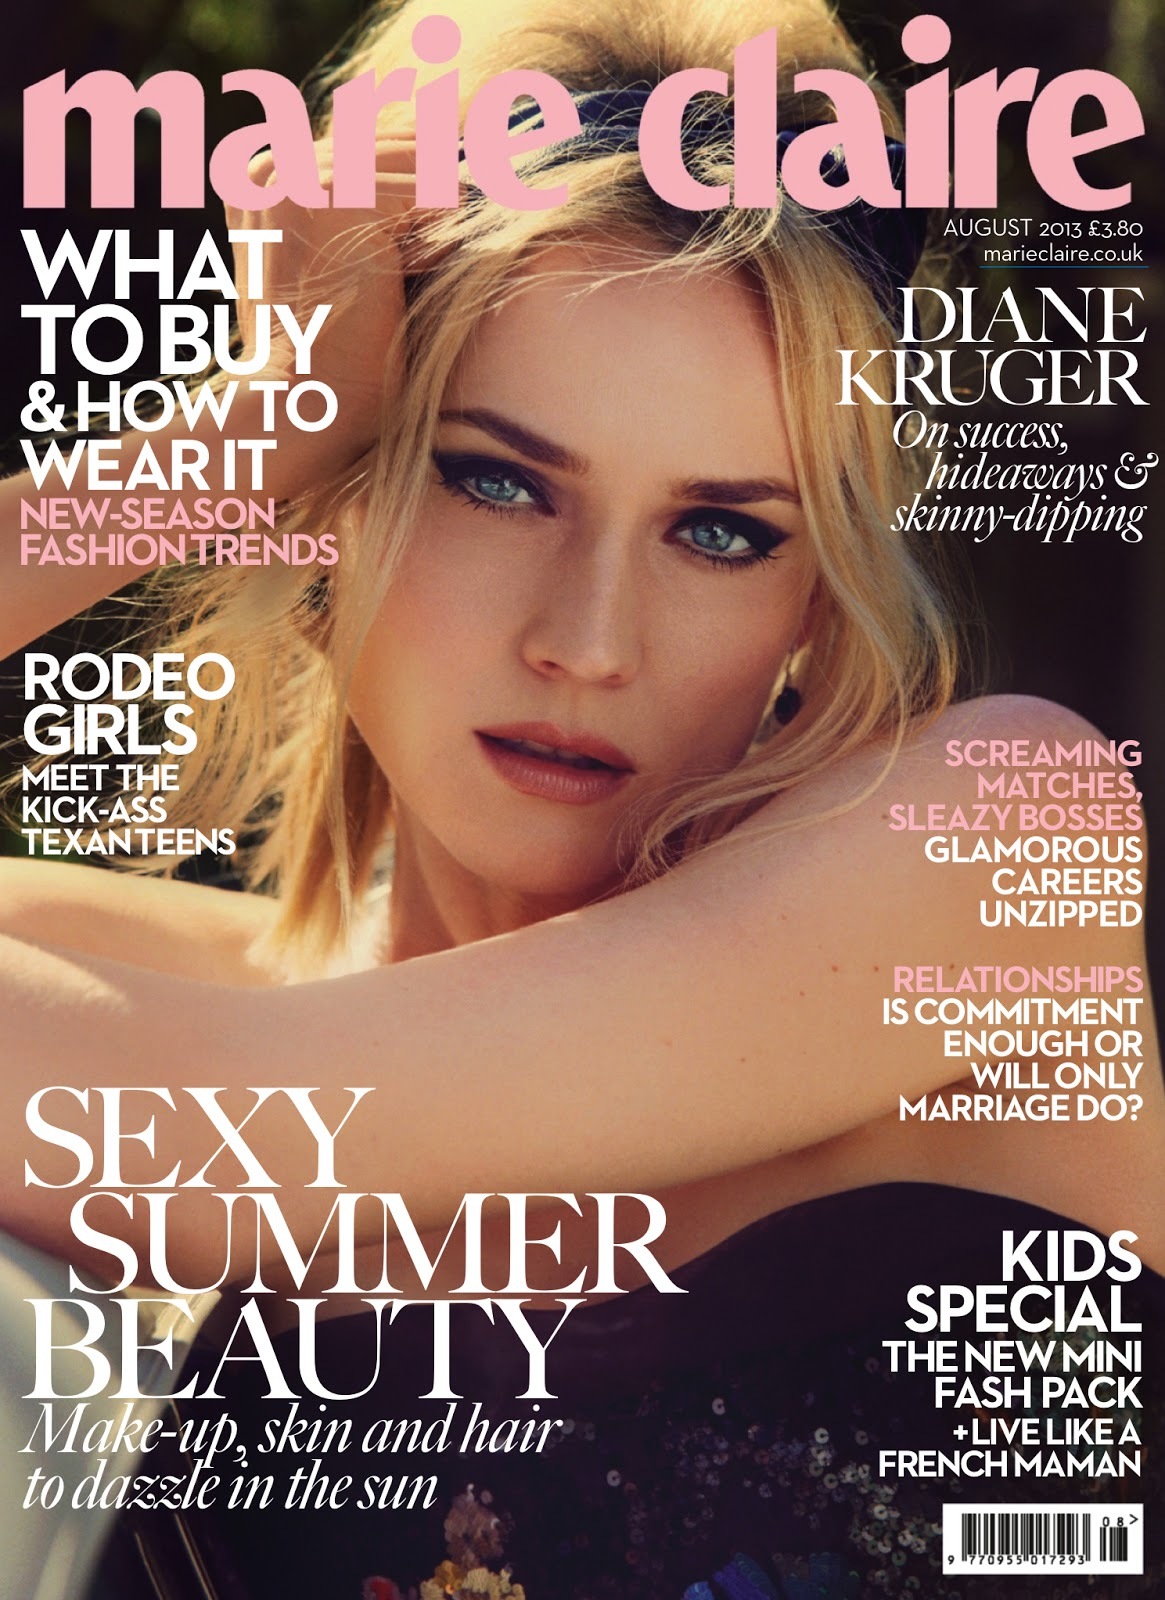 Diane-Kruger-Marie-Claire-201301.jpg